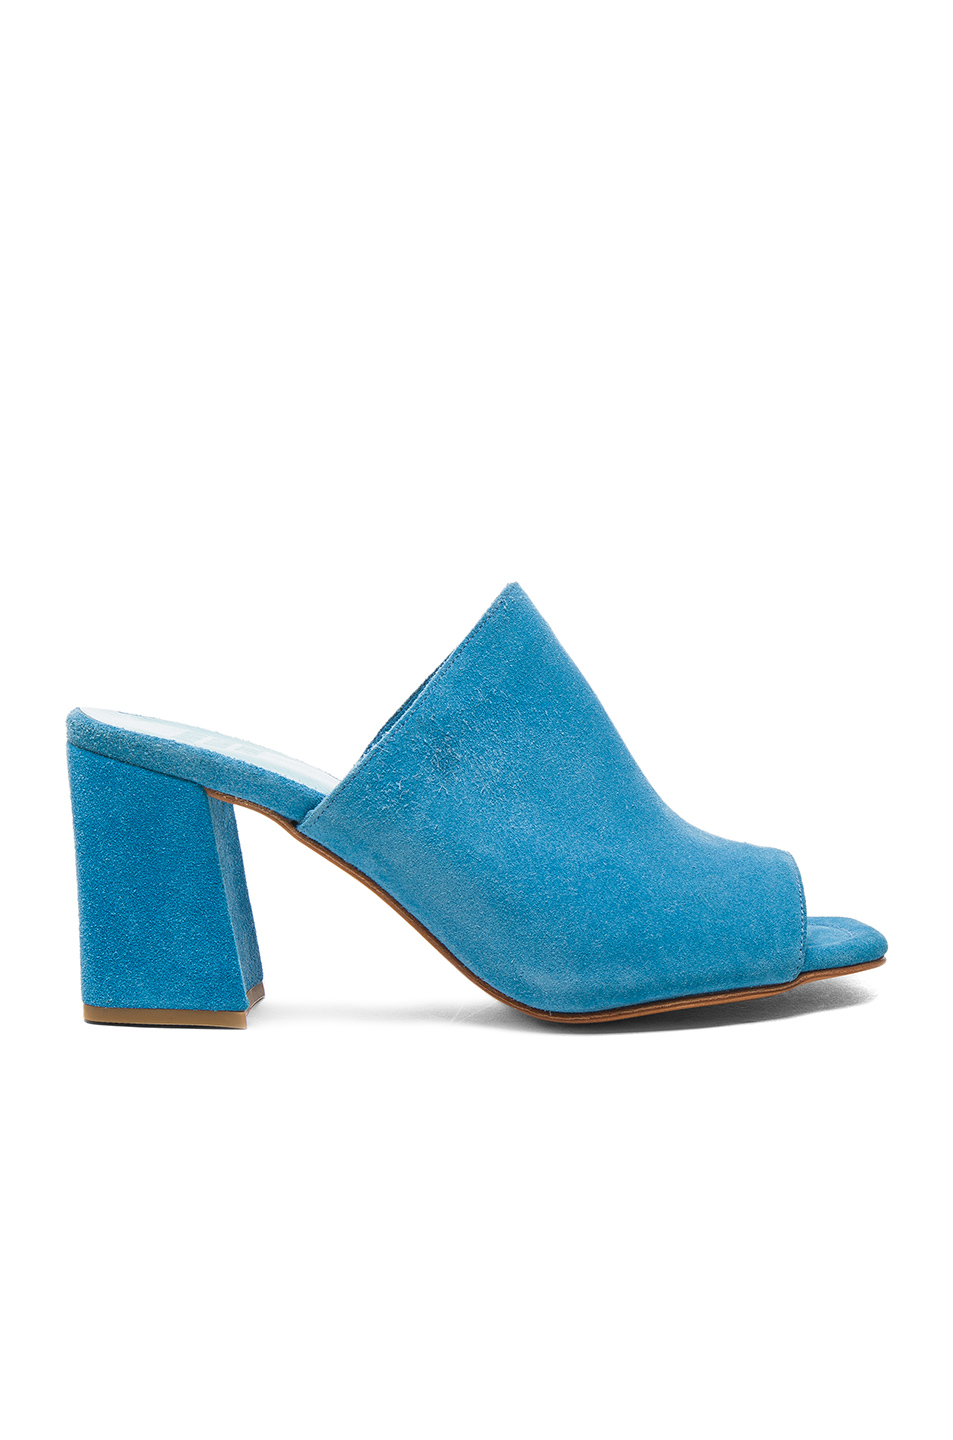 MARYAM NASSIR ZADEH Suede Penelope Mules In Blue. in Turquoise Suede